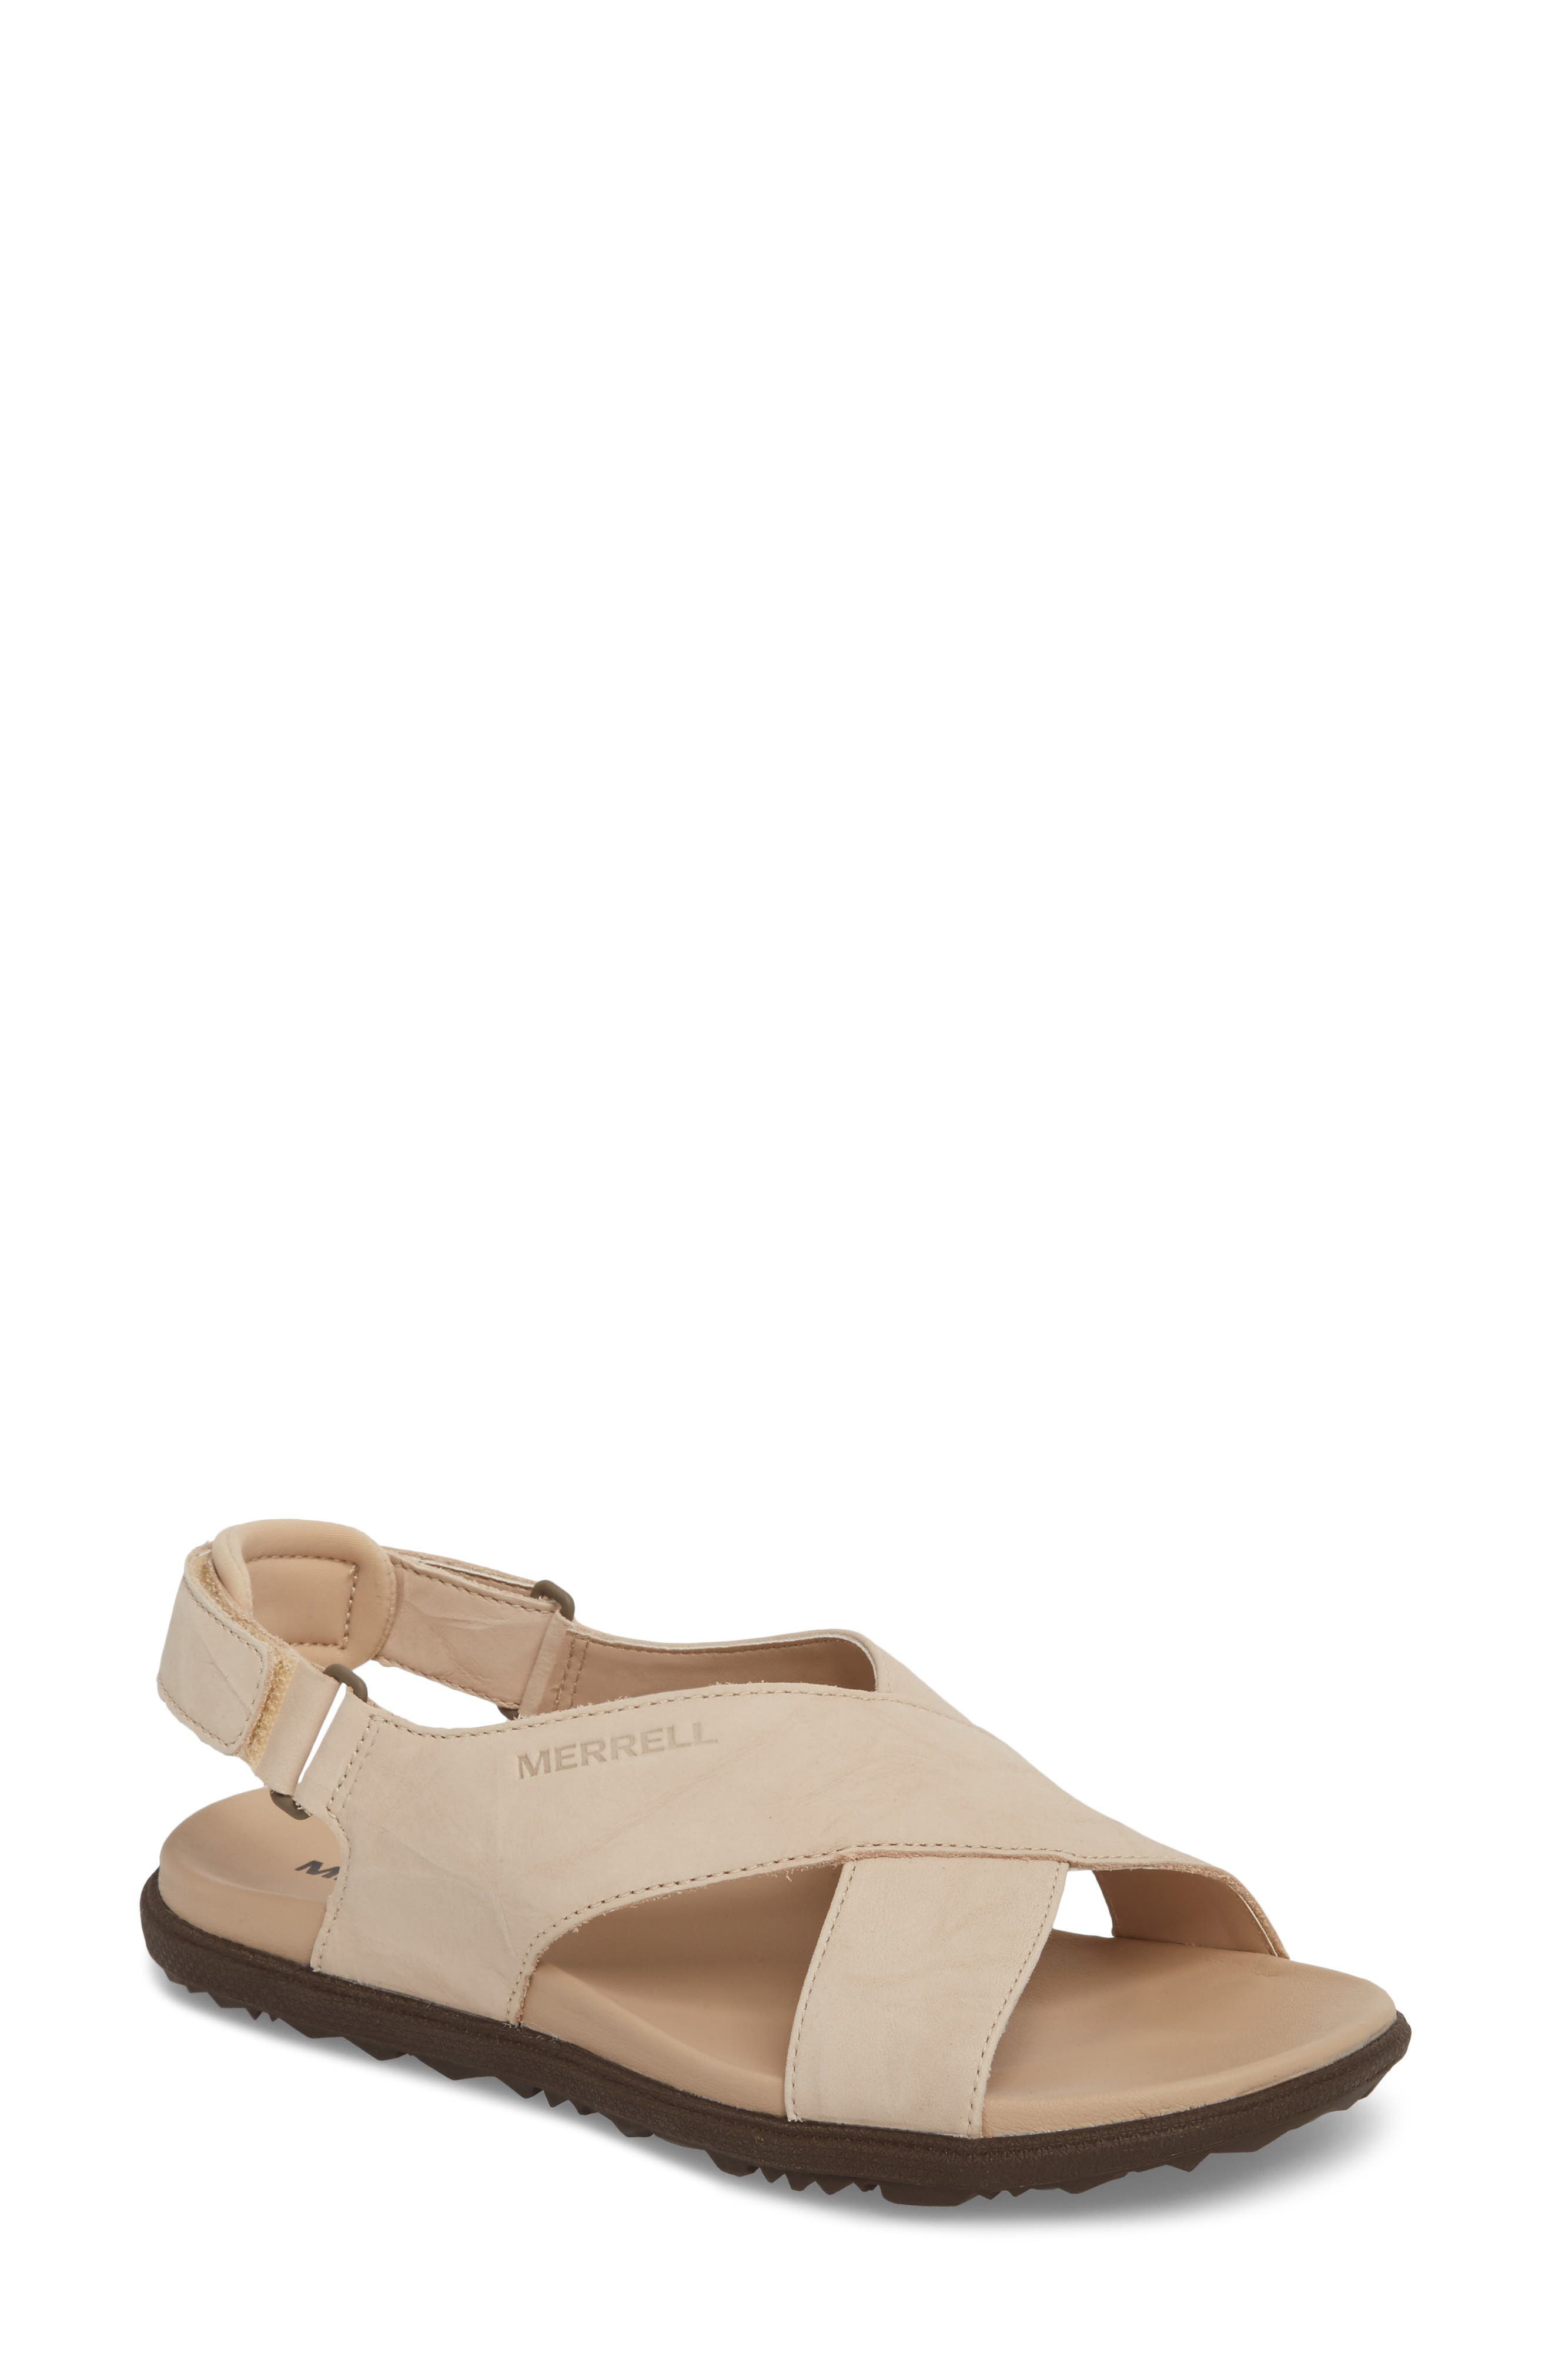 Around Town Sunvue Sandal,                         Main,                         color, Natural Tan